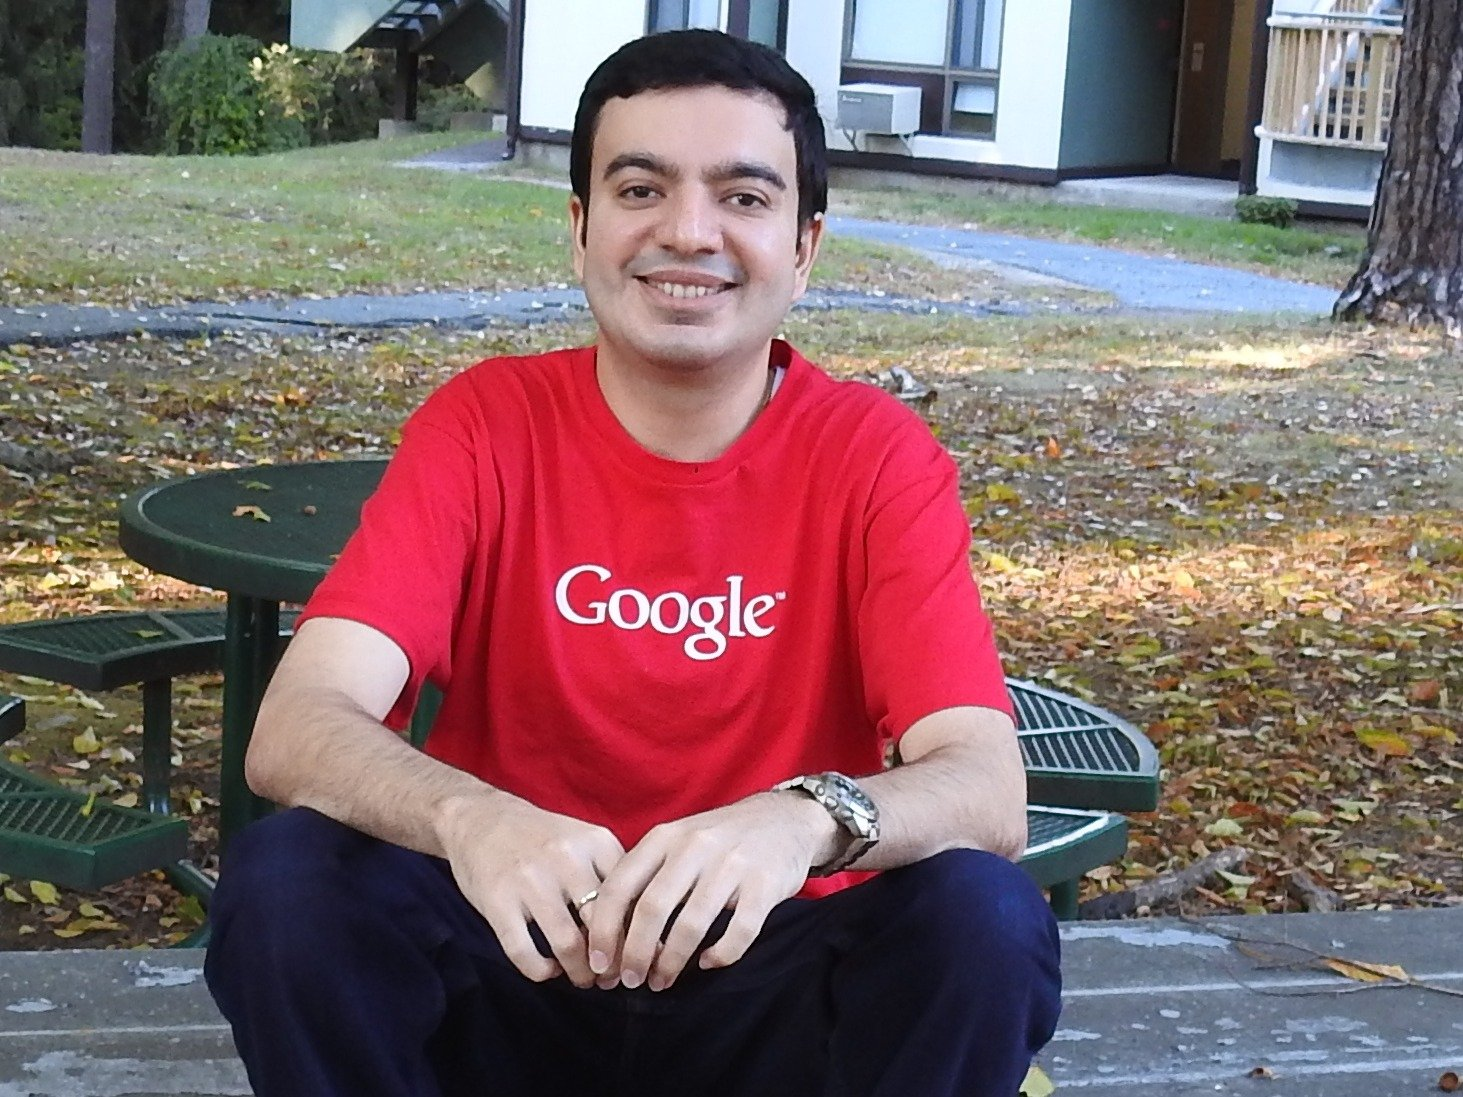 A Random Guy Bought Google.com Domain For Just $12 For 1 Minute